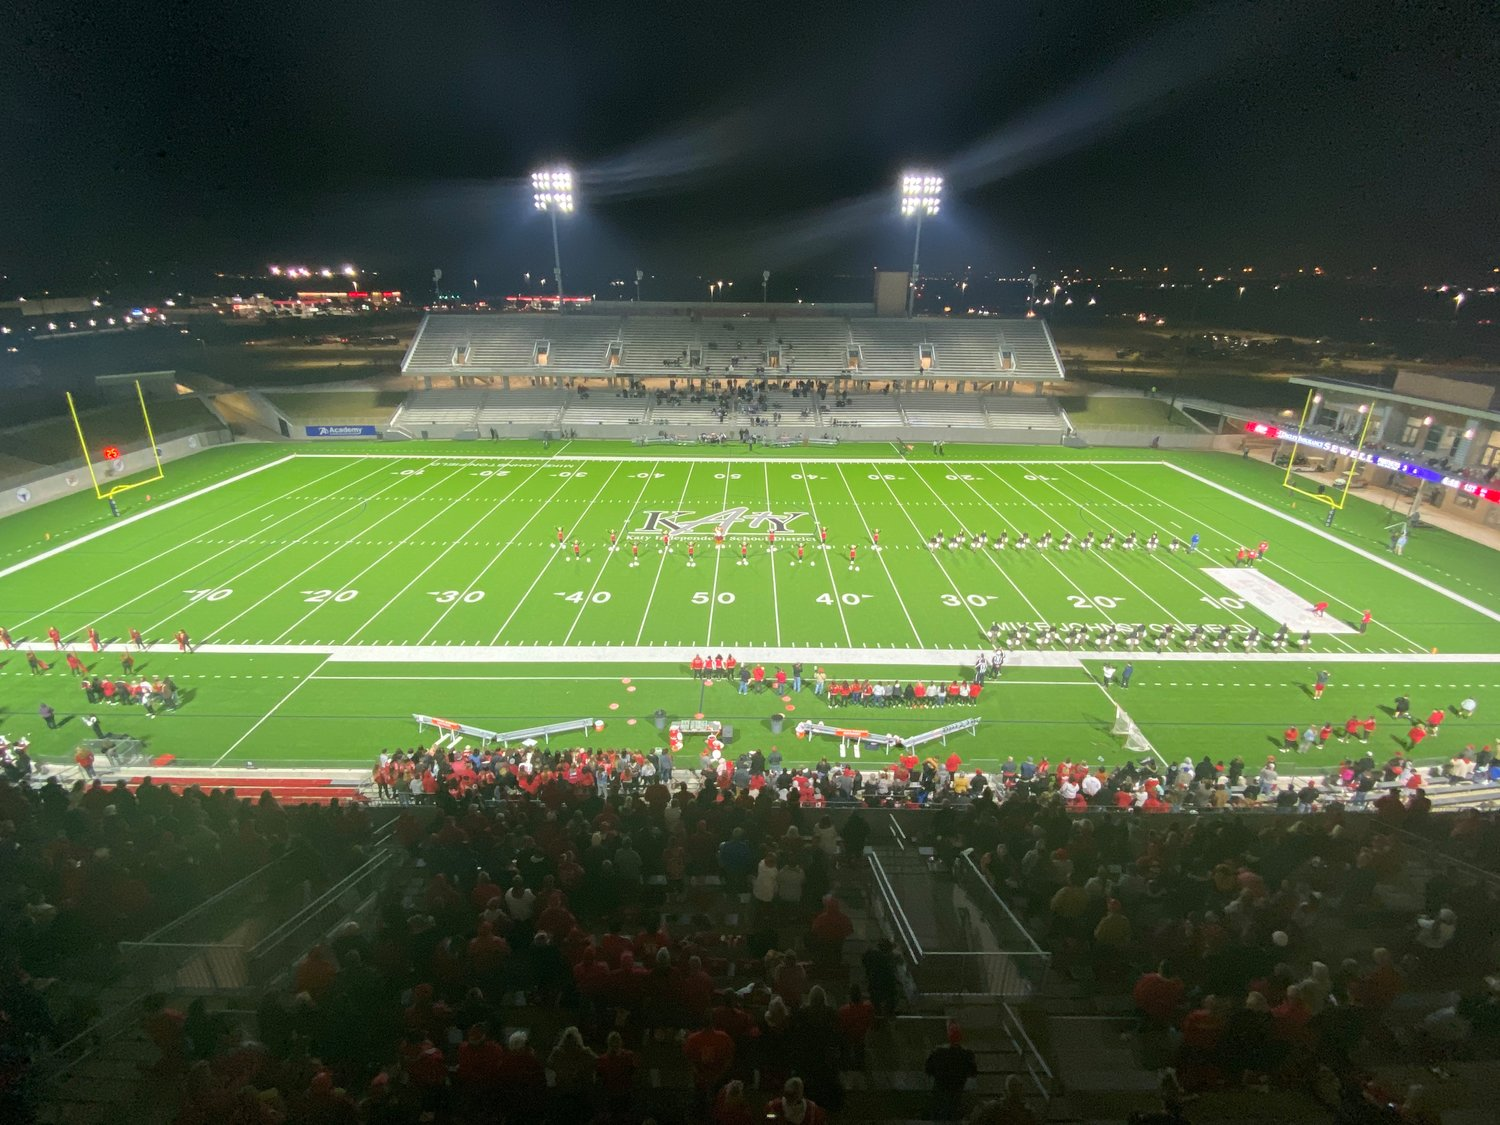 Katy ISD's Legacy Stadium on game night.